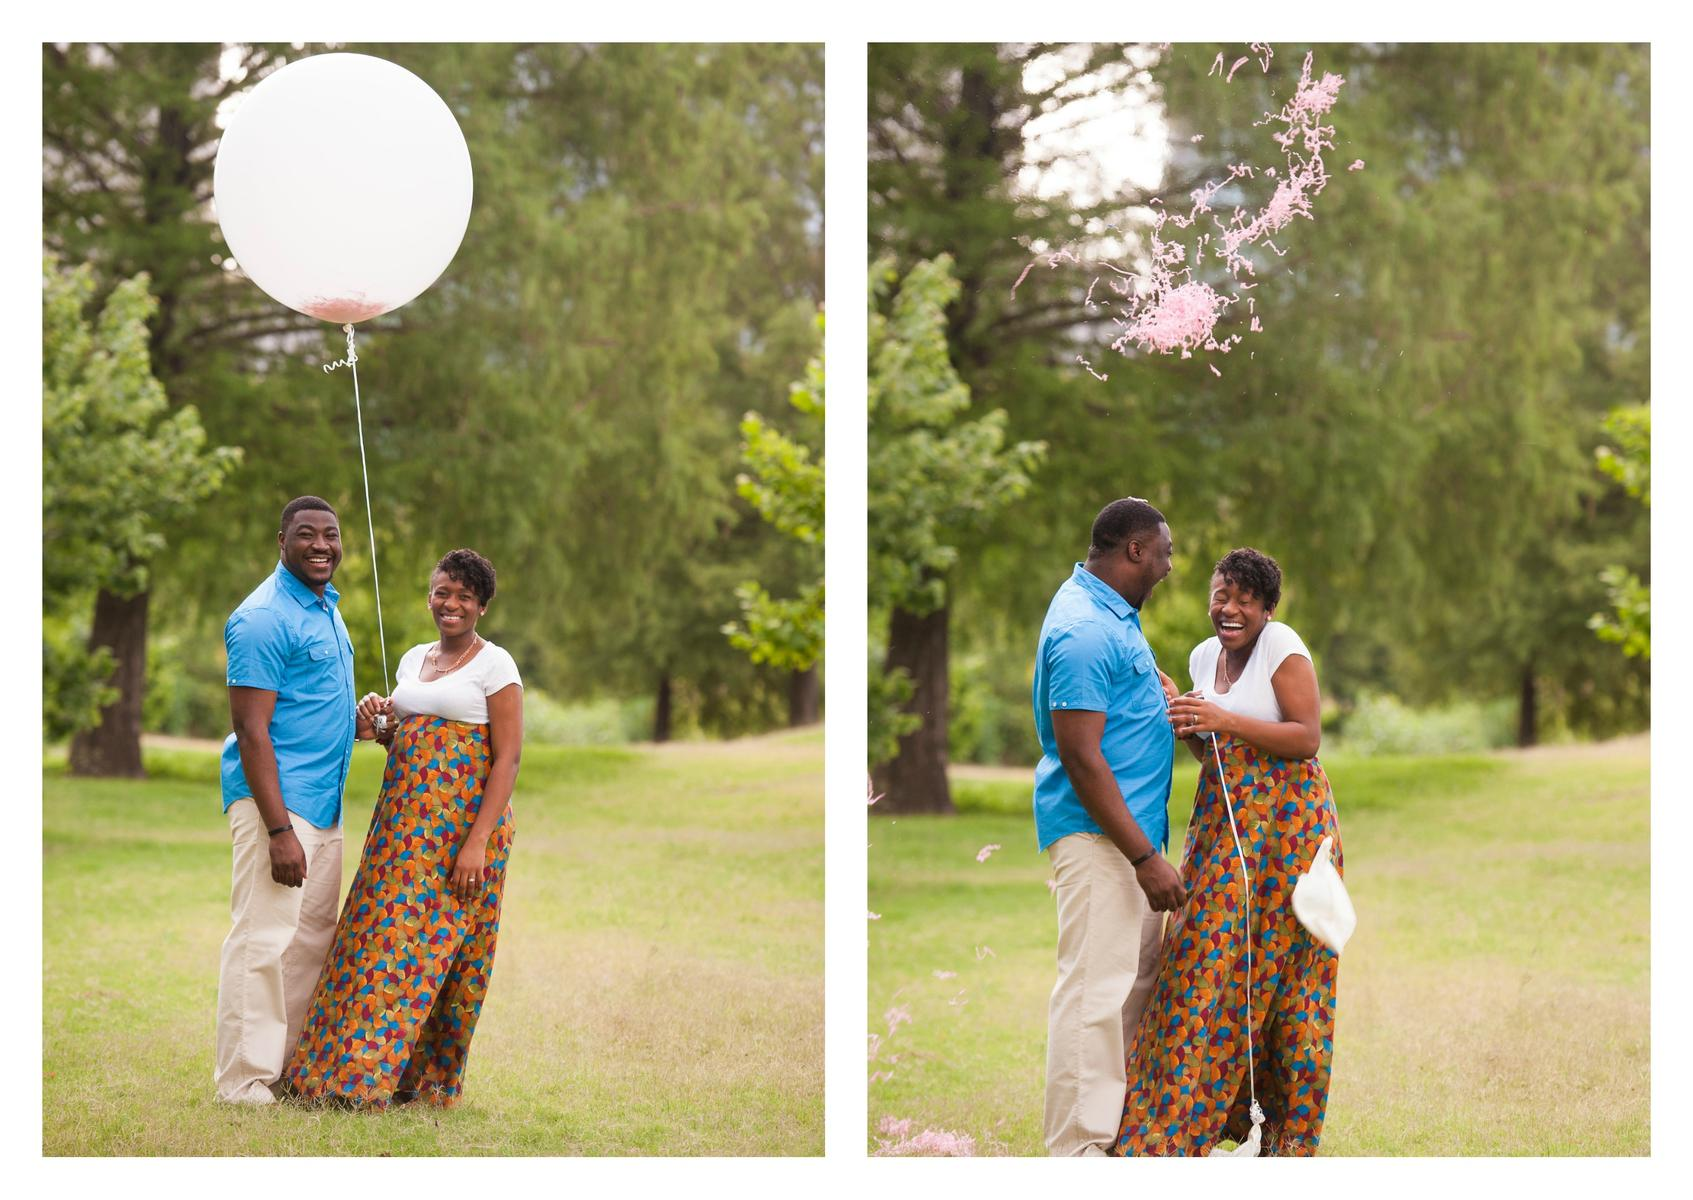 Gender Reveal Ideas Cute Ways Expectant Couples d the News